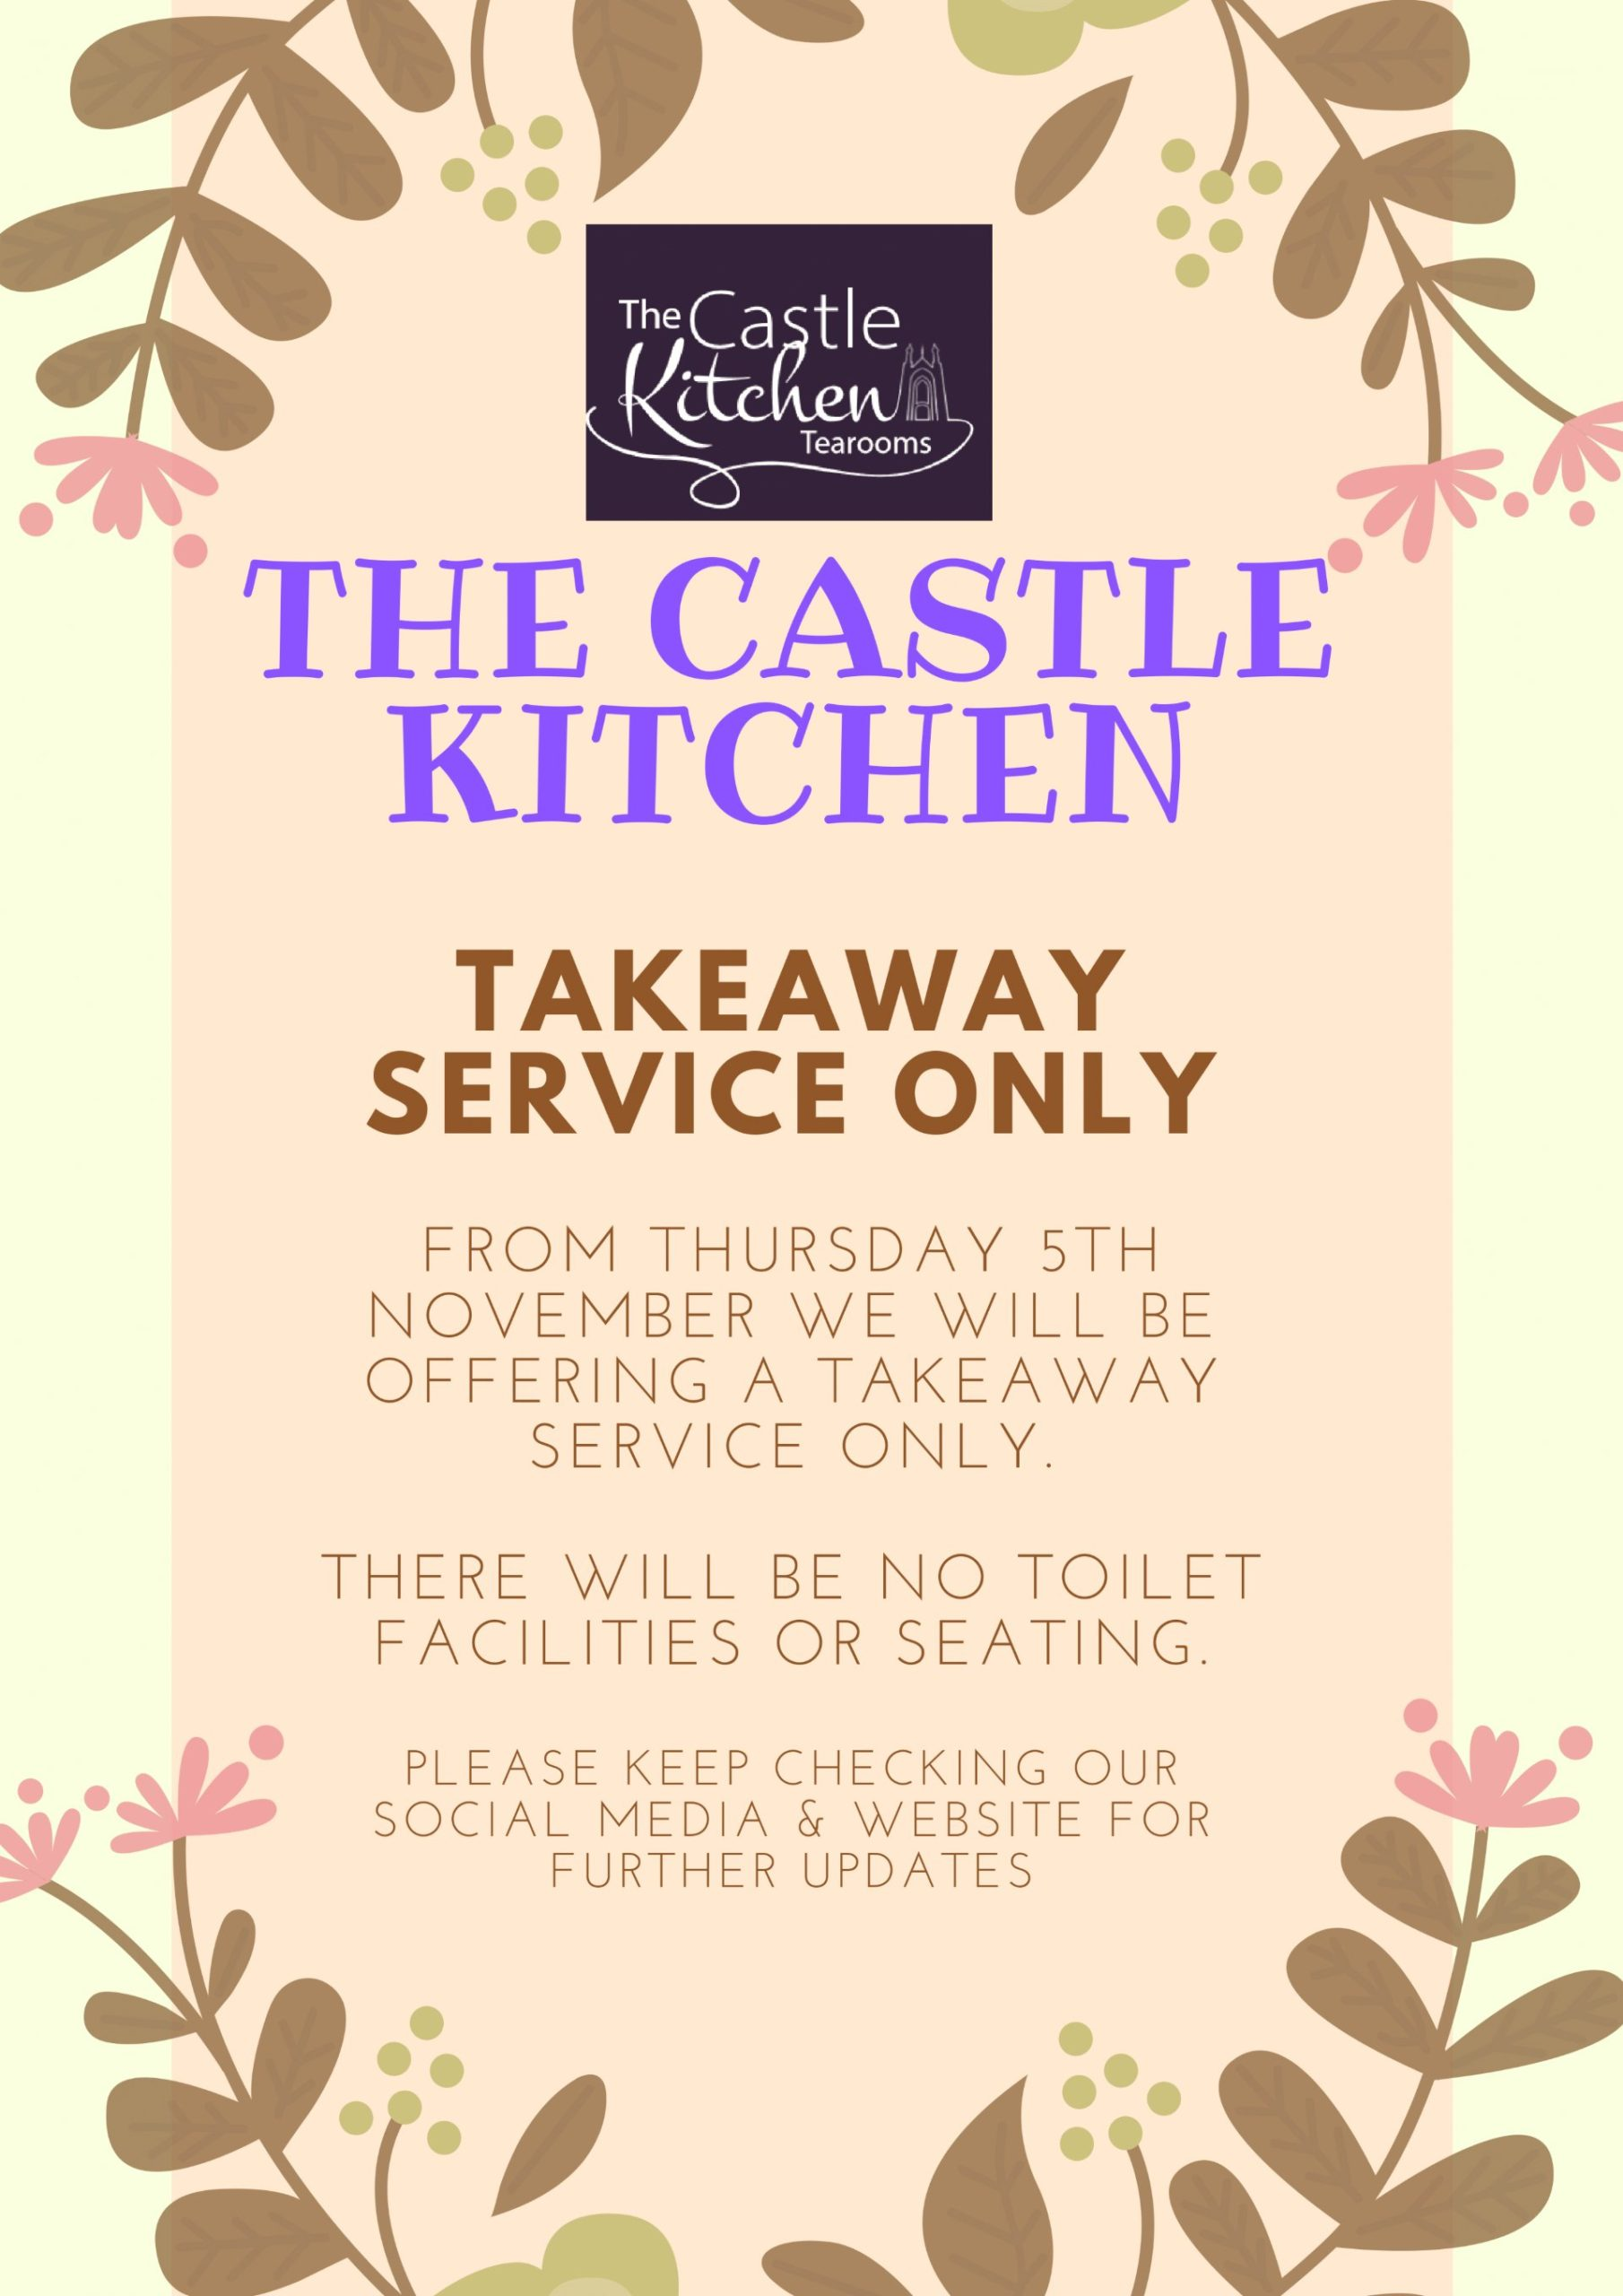 The Castle Kitchen Takeaway Service at Highcliffe Castle